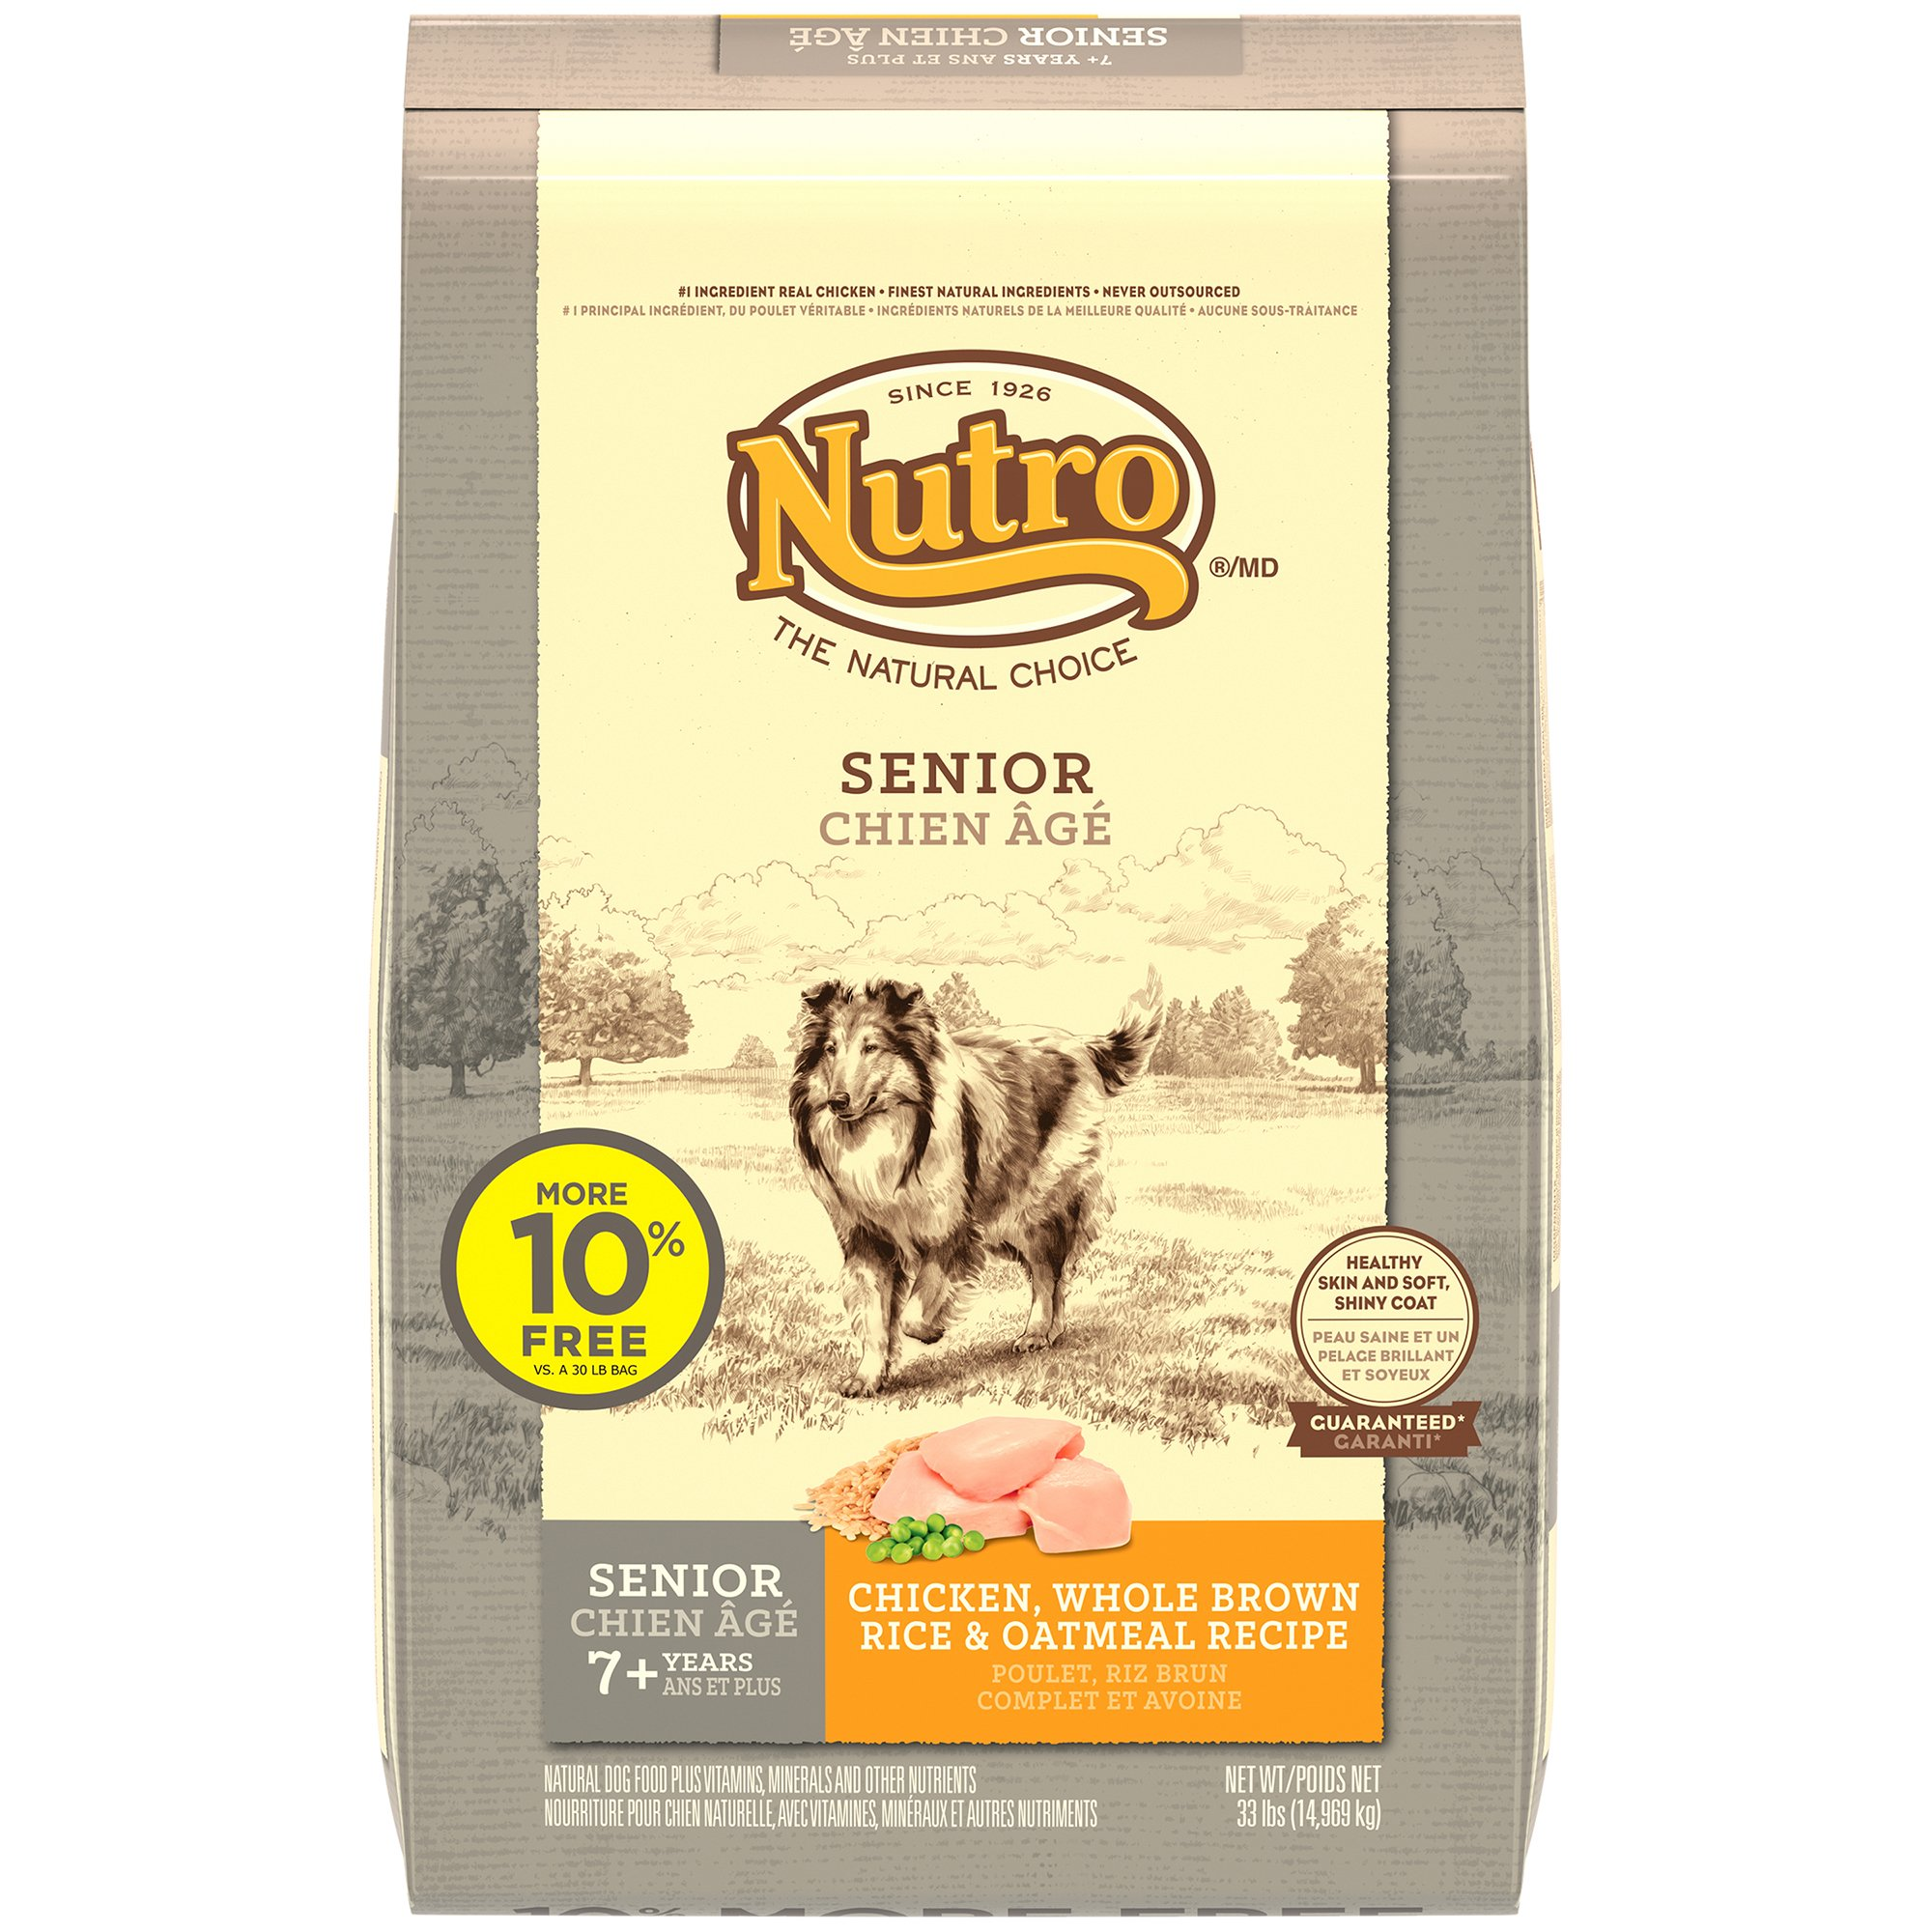 Nutro Chicken, Whole Brown Rice & Oatmeal Senior Dog Food